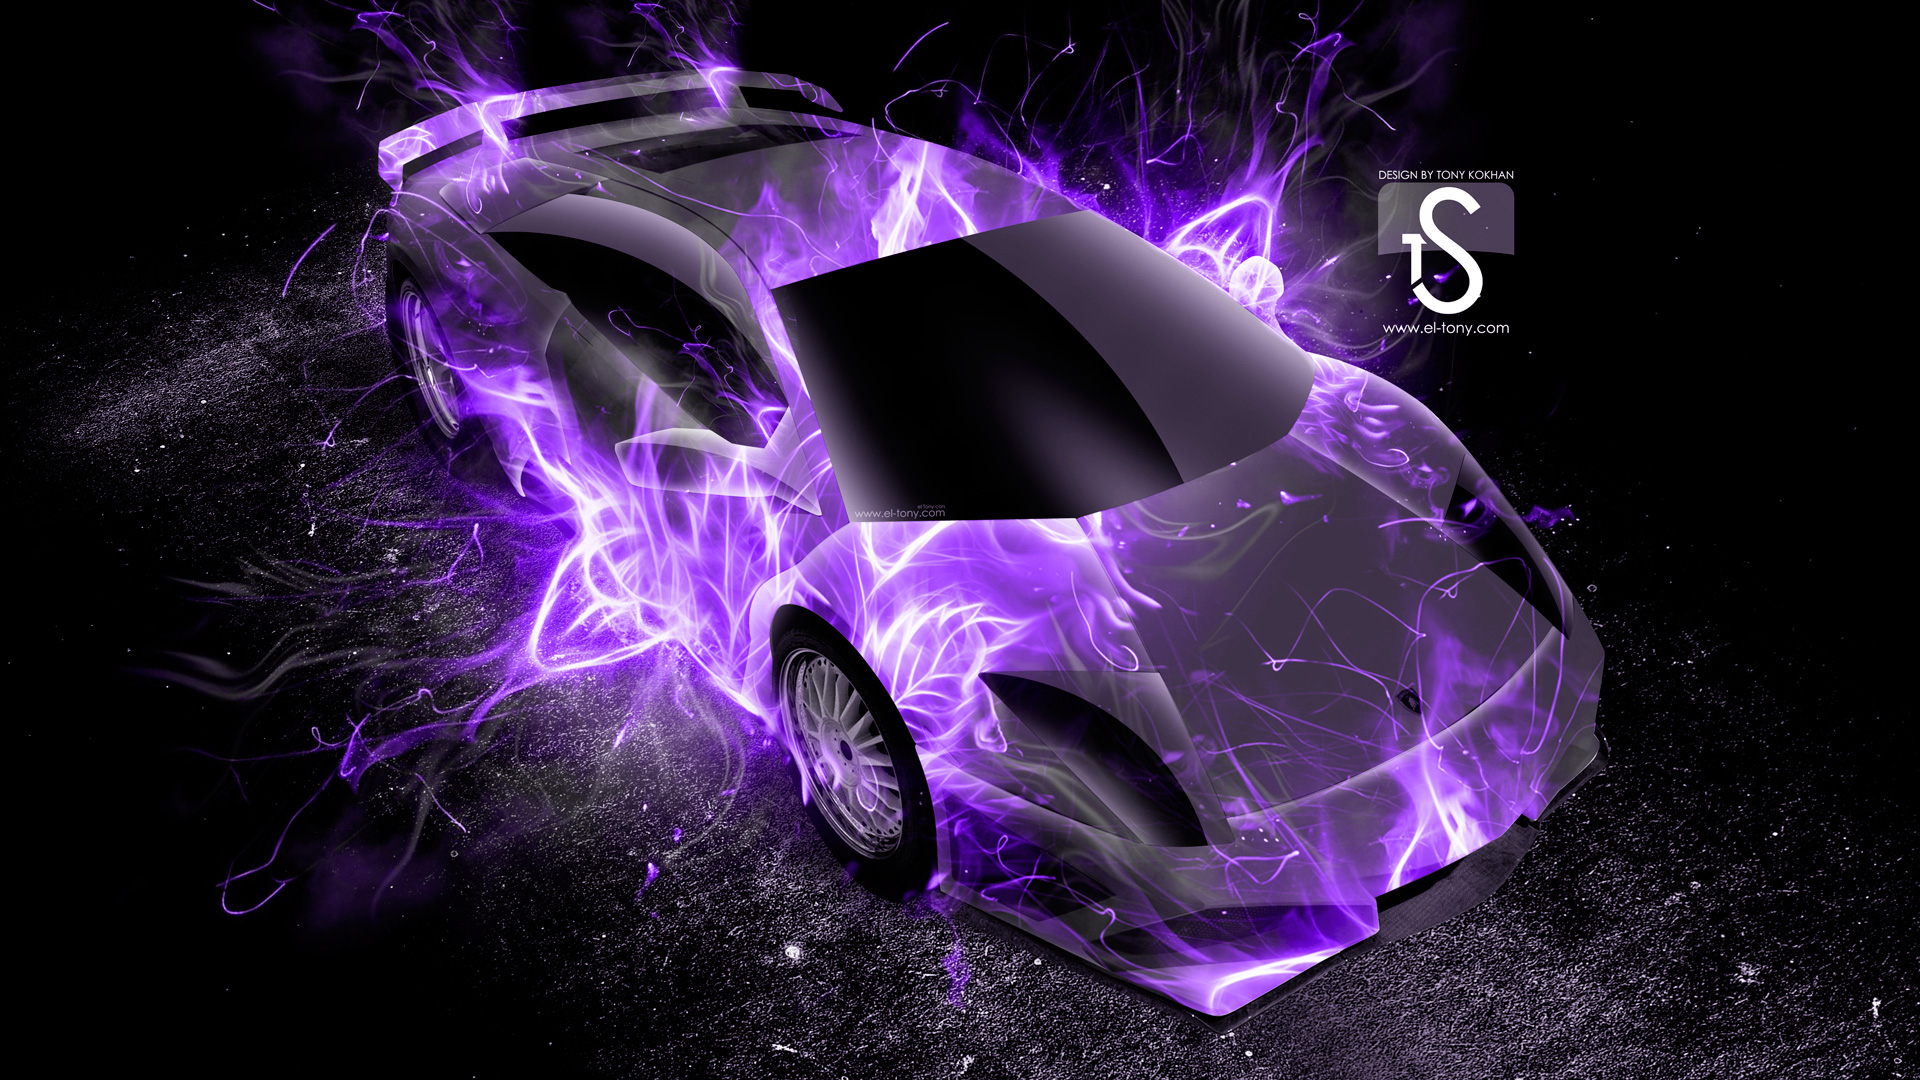 Delicieux Lamborghini Murcielago Up Violet Fire Abstract Car 2013